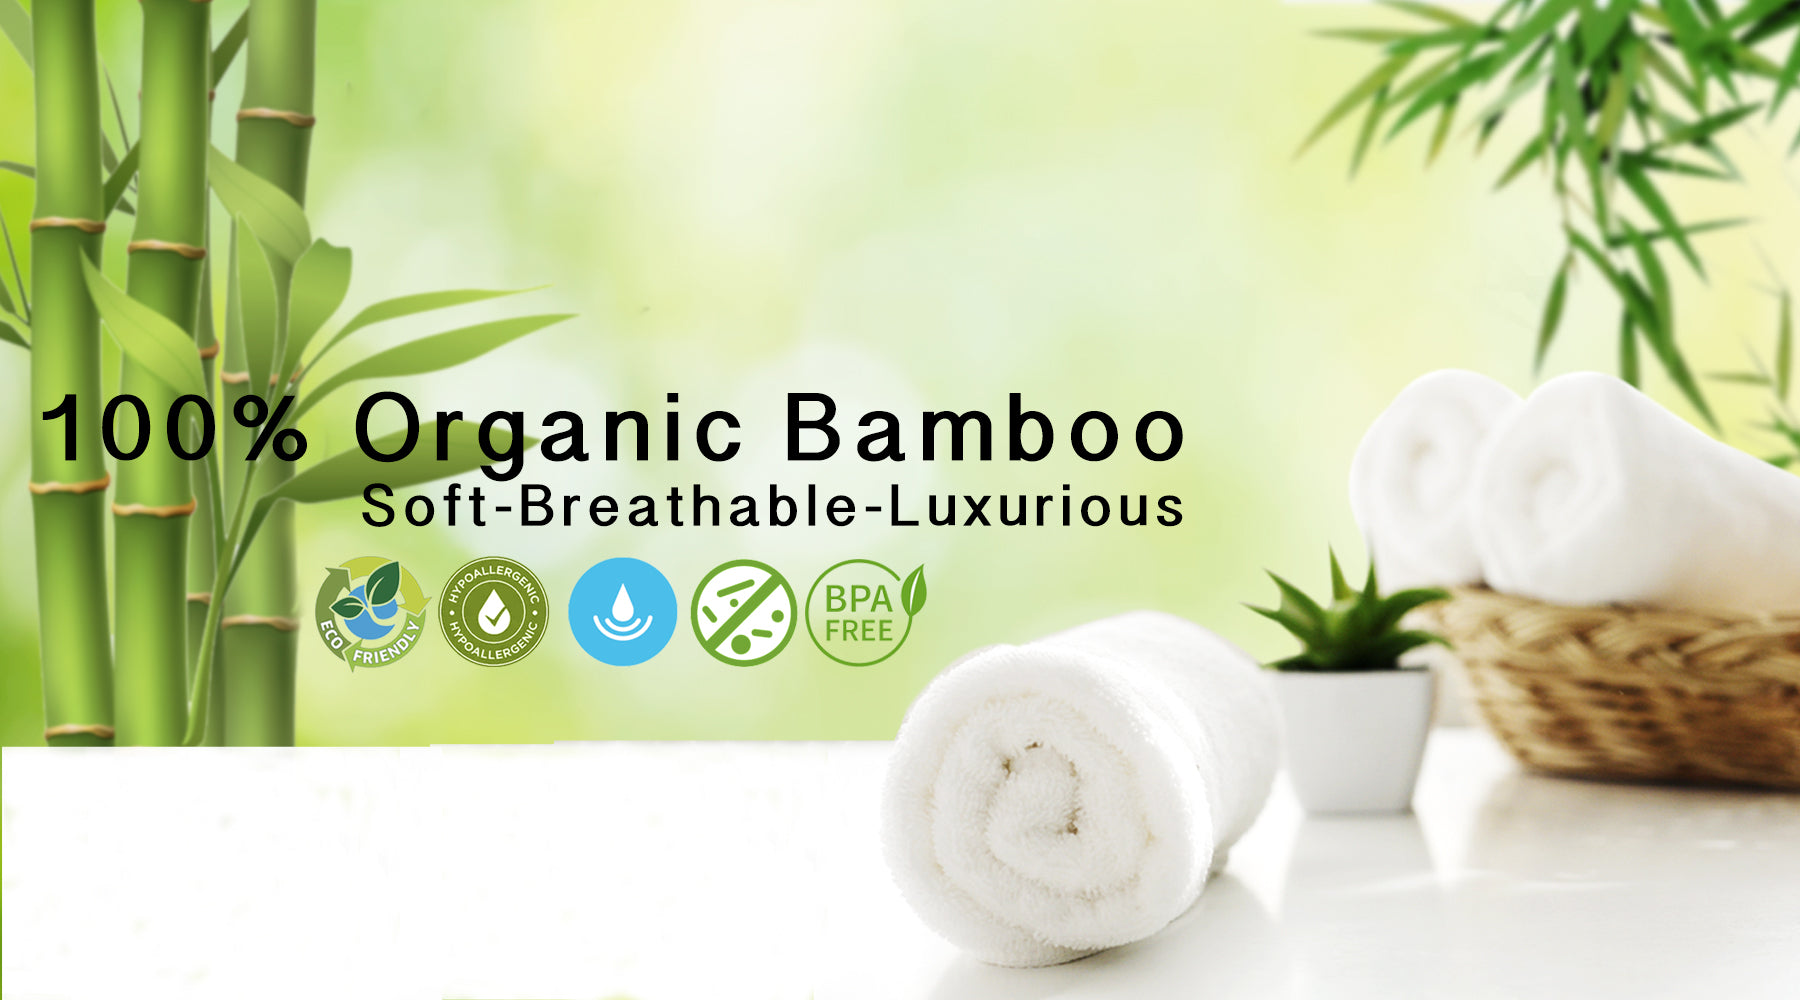 100% organic bamboo towels banner with a bamboo plant and towels in a basket